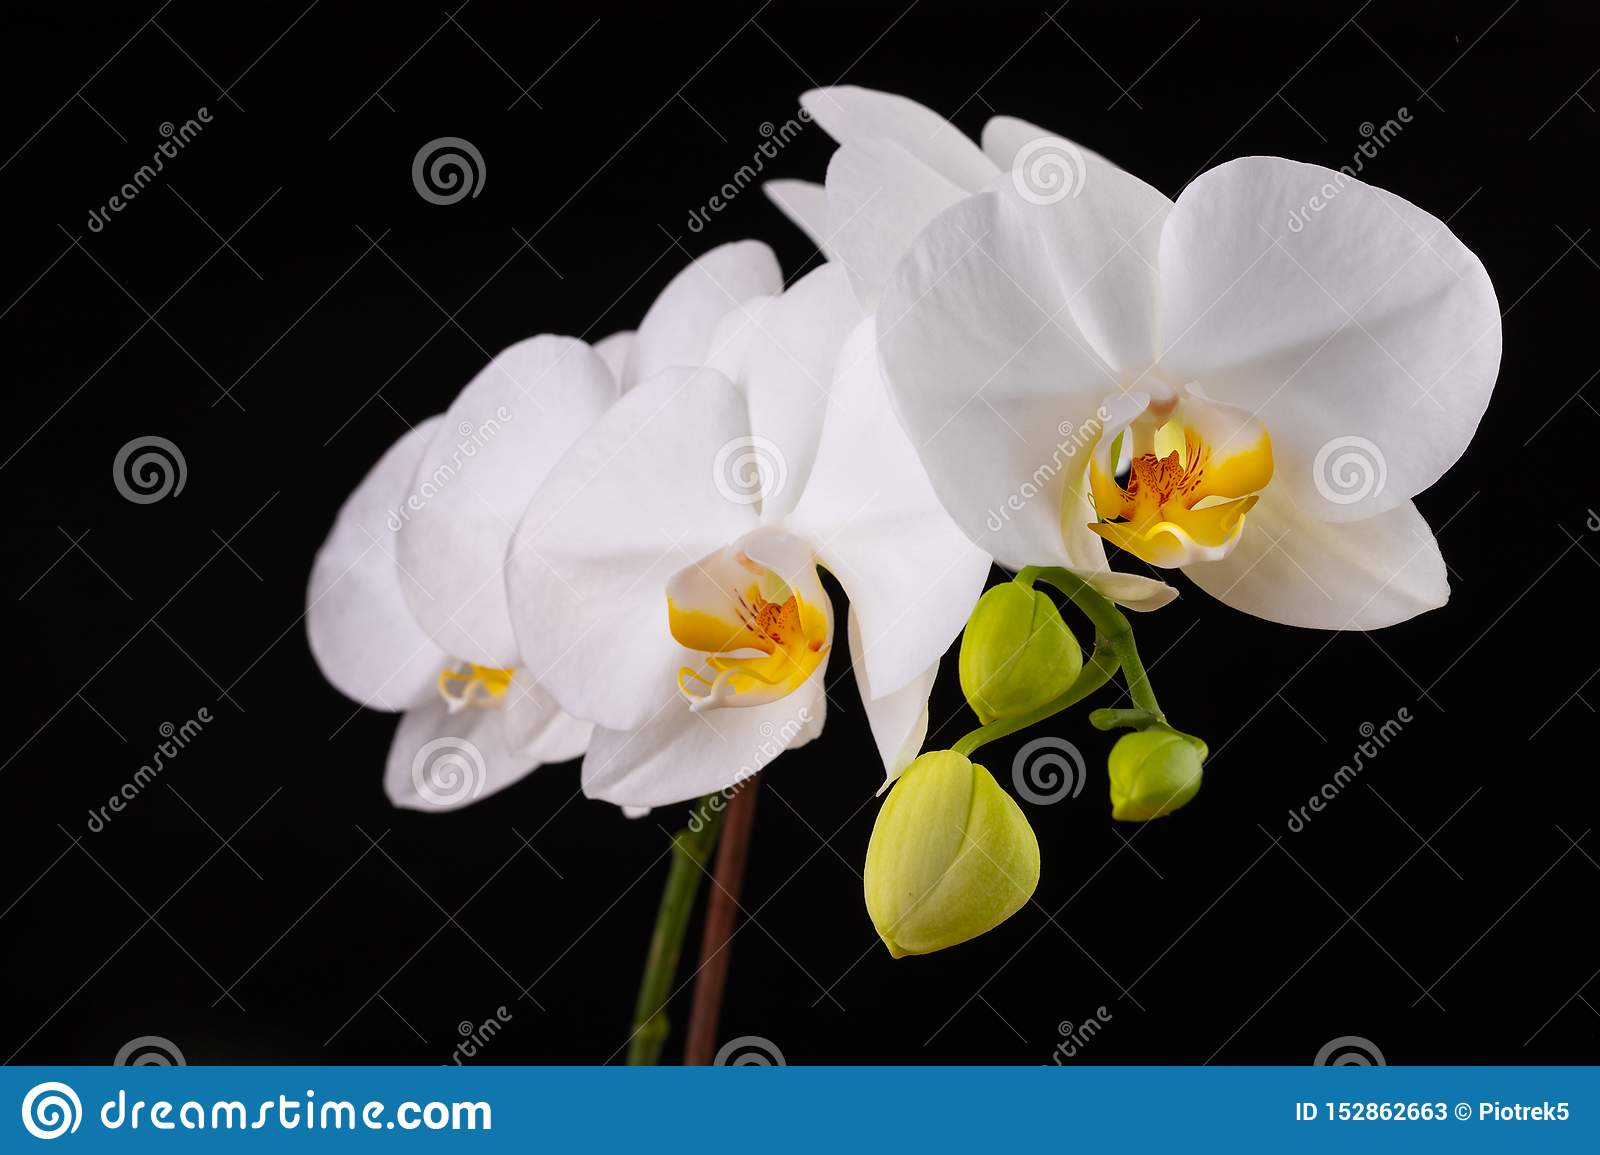 White orchid flowers. A beautifully blossomed flower bred in home conditions